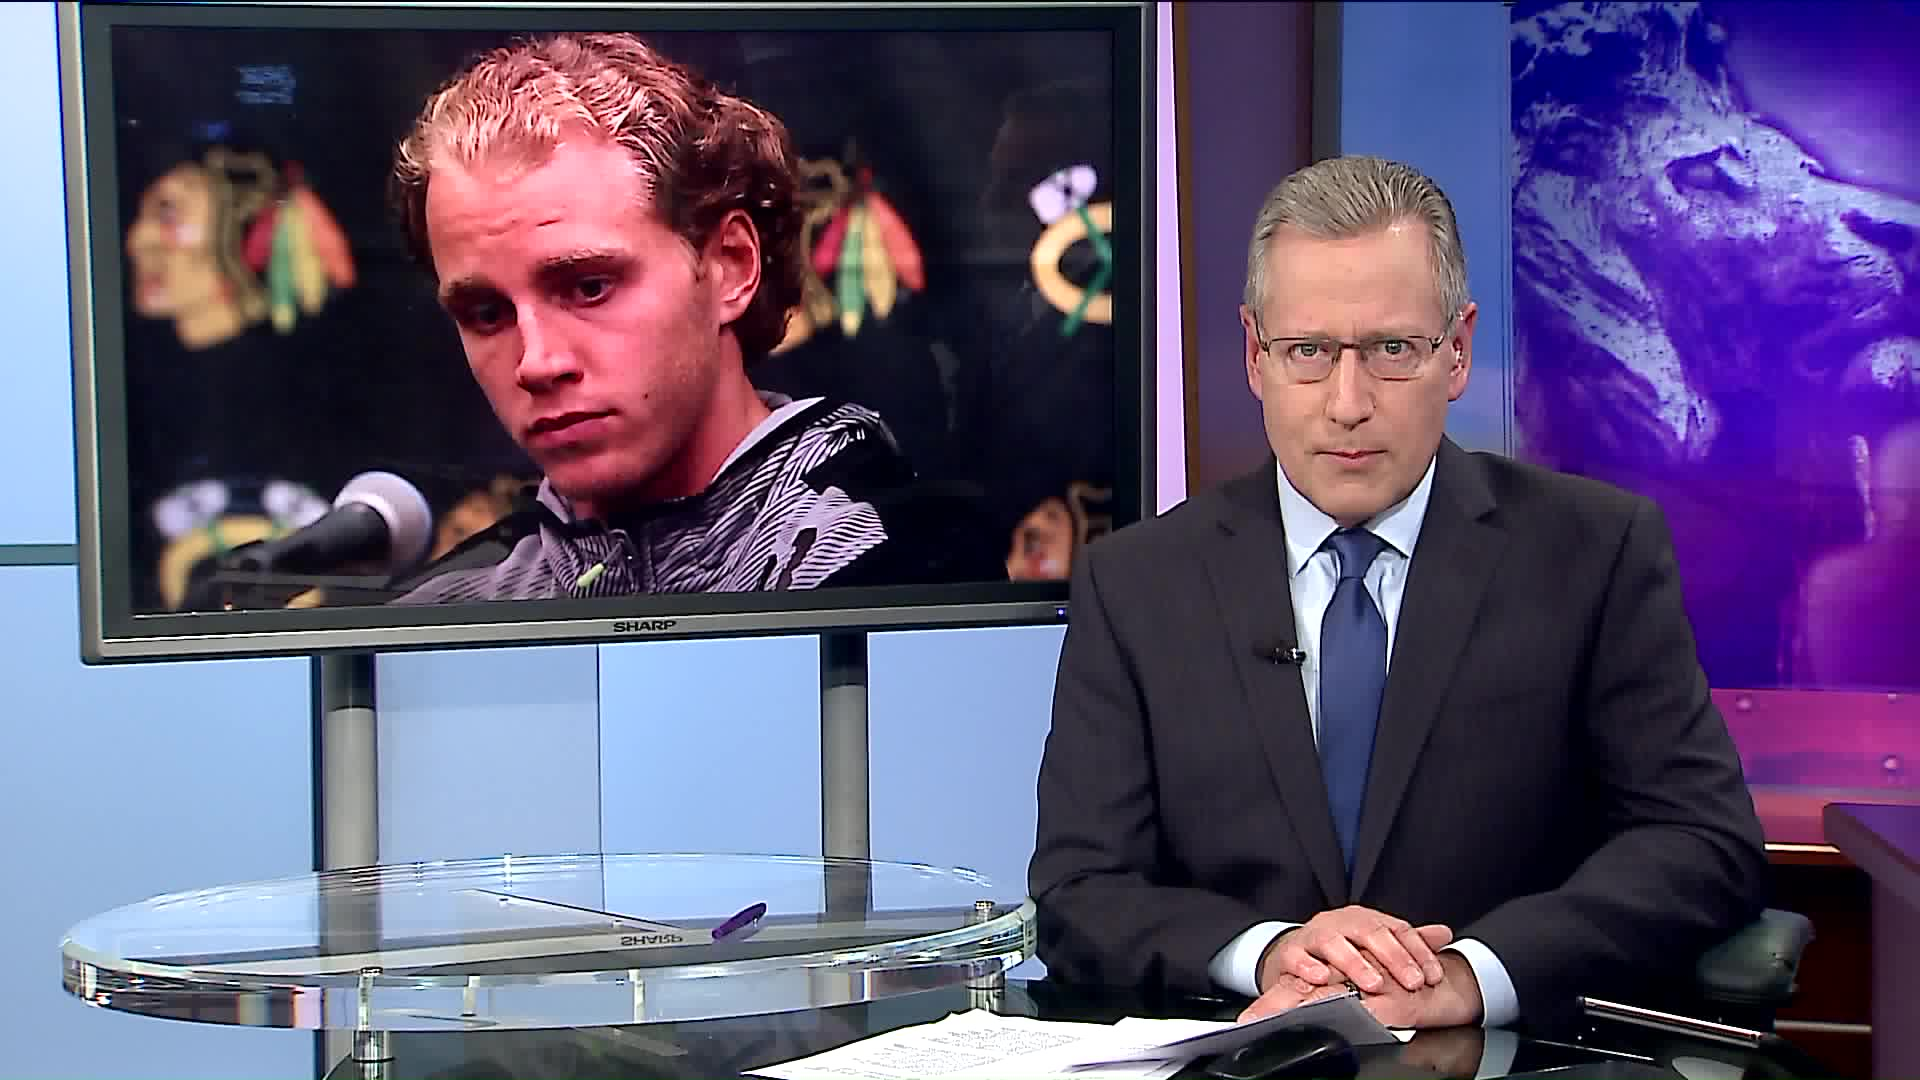 No Charges Against NHL Star Patrick Kane Following Rape Accusation